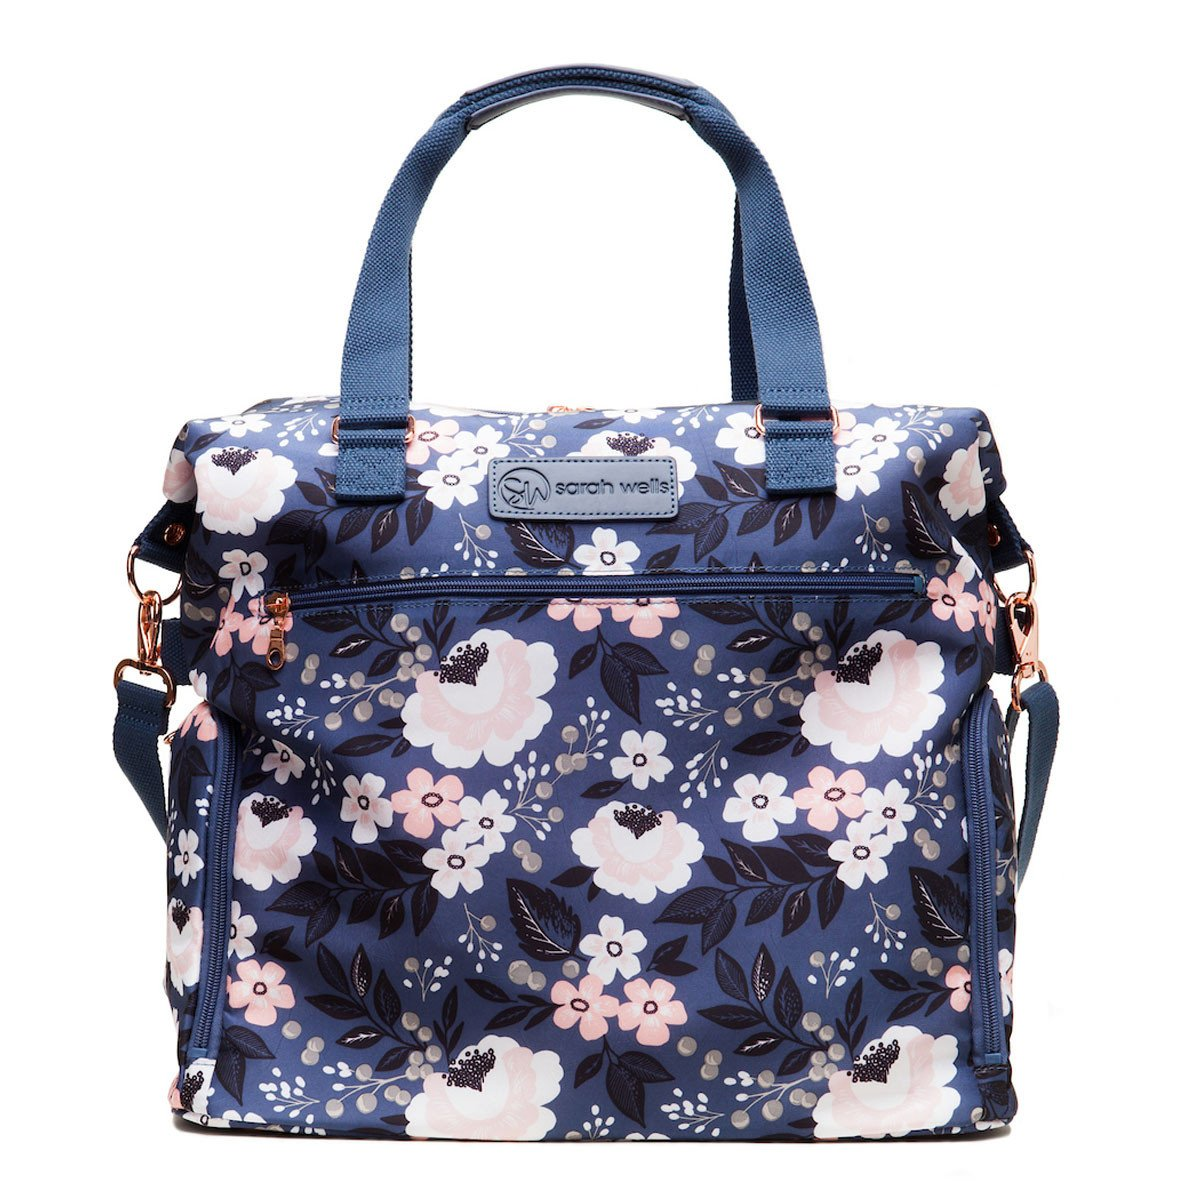 Sarah Wells Breast Pump Bag (Lizzy-Floral) - Limited Edition